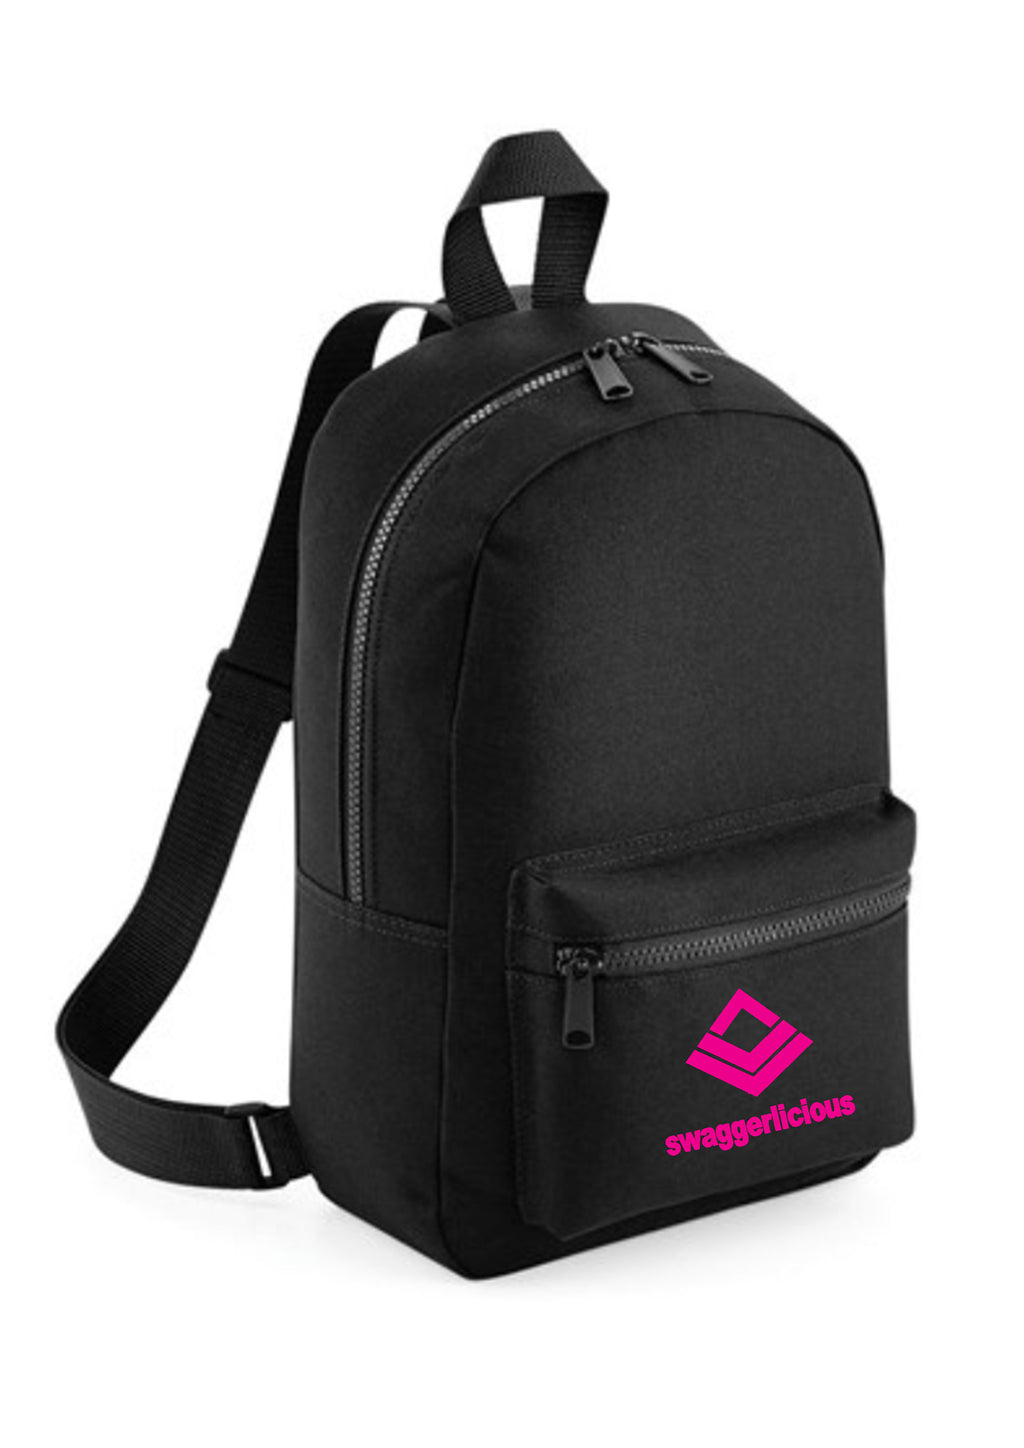 Swaggerlicious Classic Black Mini Backpack with Pink Logo - swaggerlicious-clothing.com